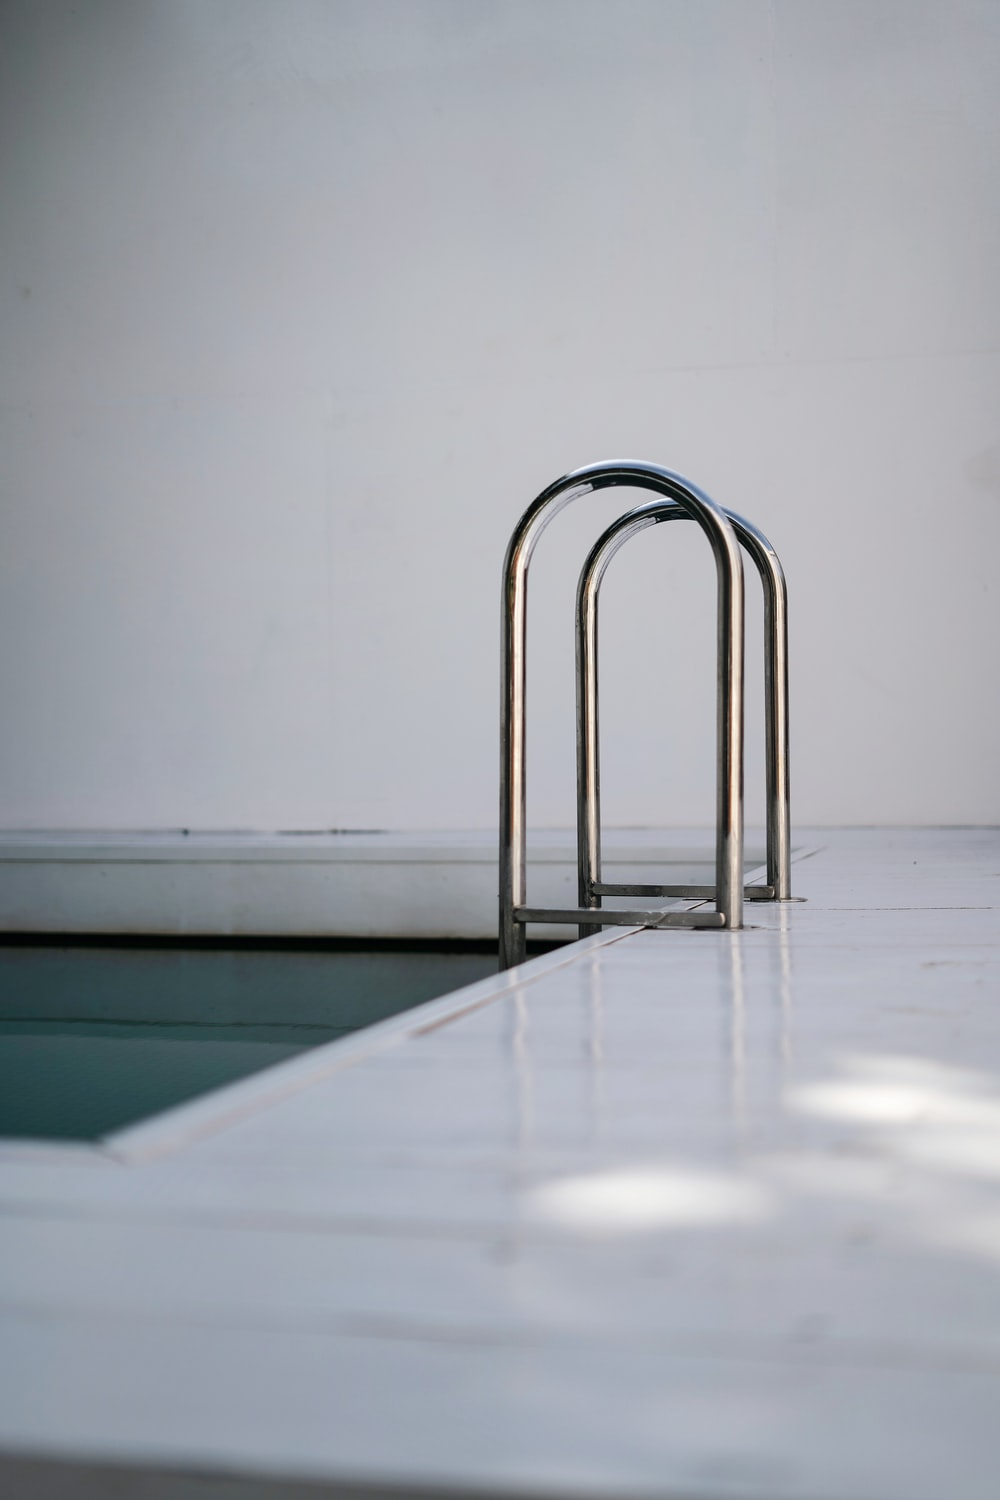 stainless steel rack on white table